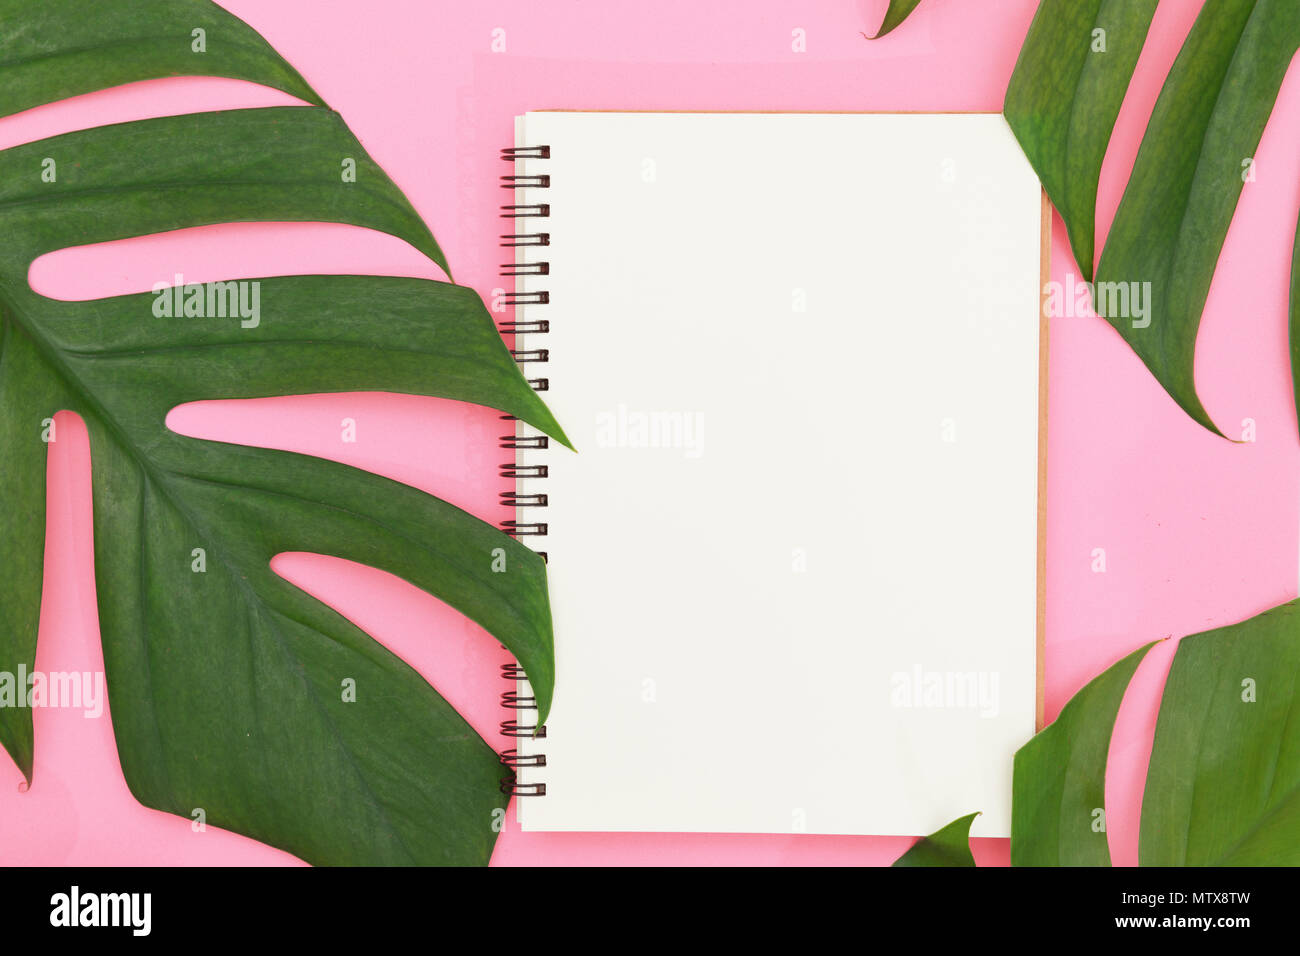 Tropical Top View Summer Botanical Concept Still Life White Frame Notebook With Monstera Liana Vine Palm Leaves Pink Background Flat Lay Layout Stock Photo Alamy Shop tropical leaves notebooks created by independent artists from around the globe. https www alamy com tropical top view summer botanical concept still life white frame notebook with monstera liana vine palm leaves pink background flat lay layout image187433145 html